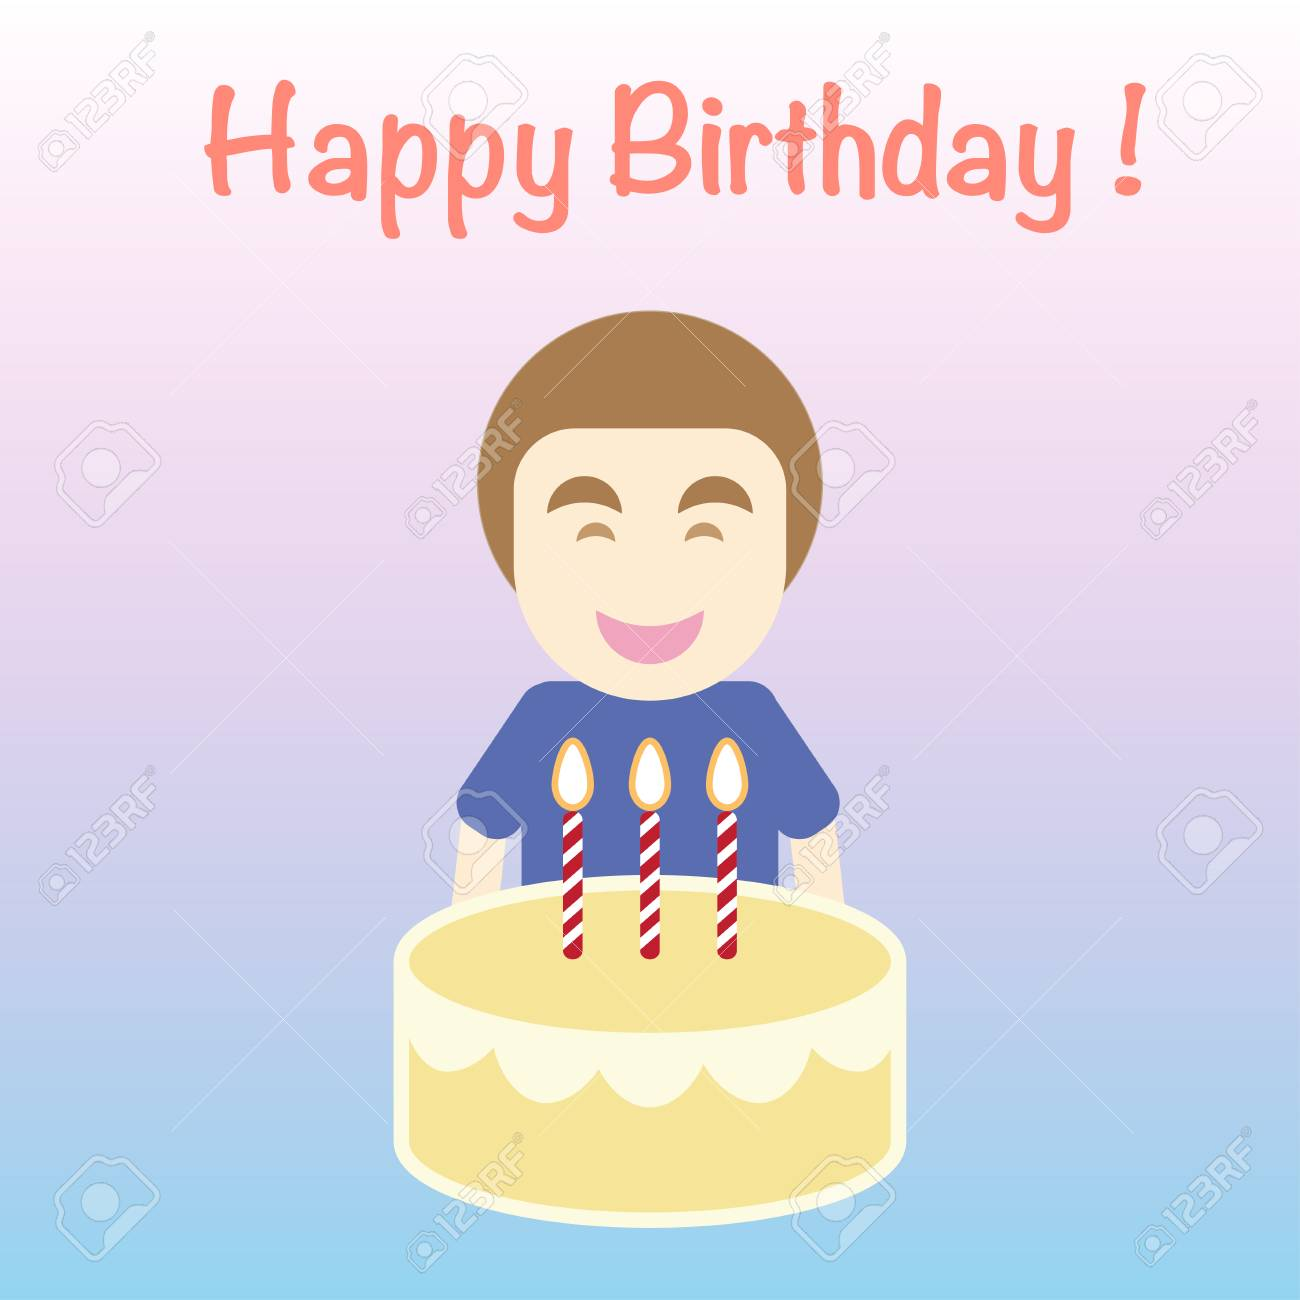 Happy Birthday Card Simple Flat Cartoon Vector The Man Carry Royalty Free Cliparts Vectors And Stock Illustration Image 92988944